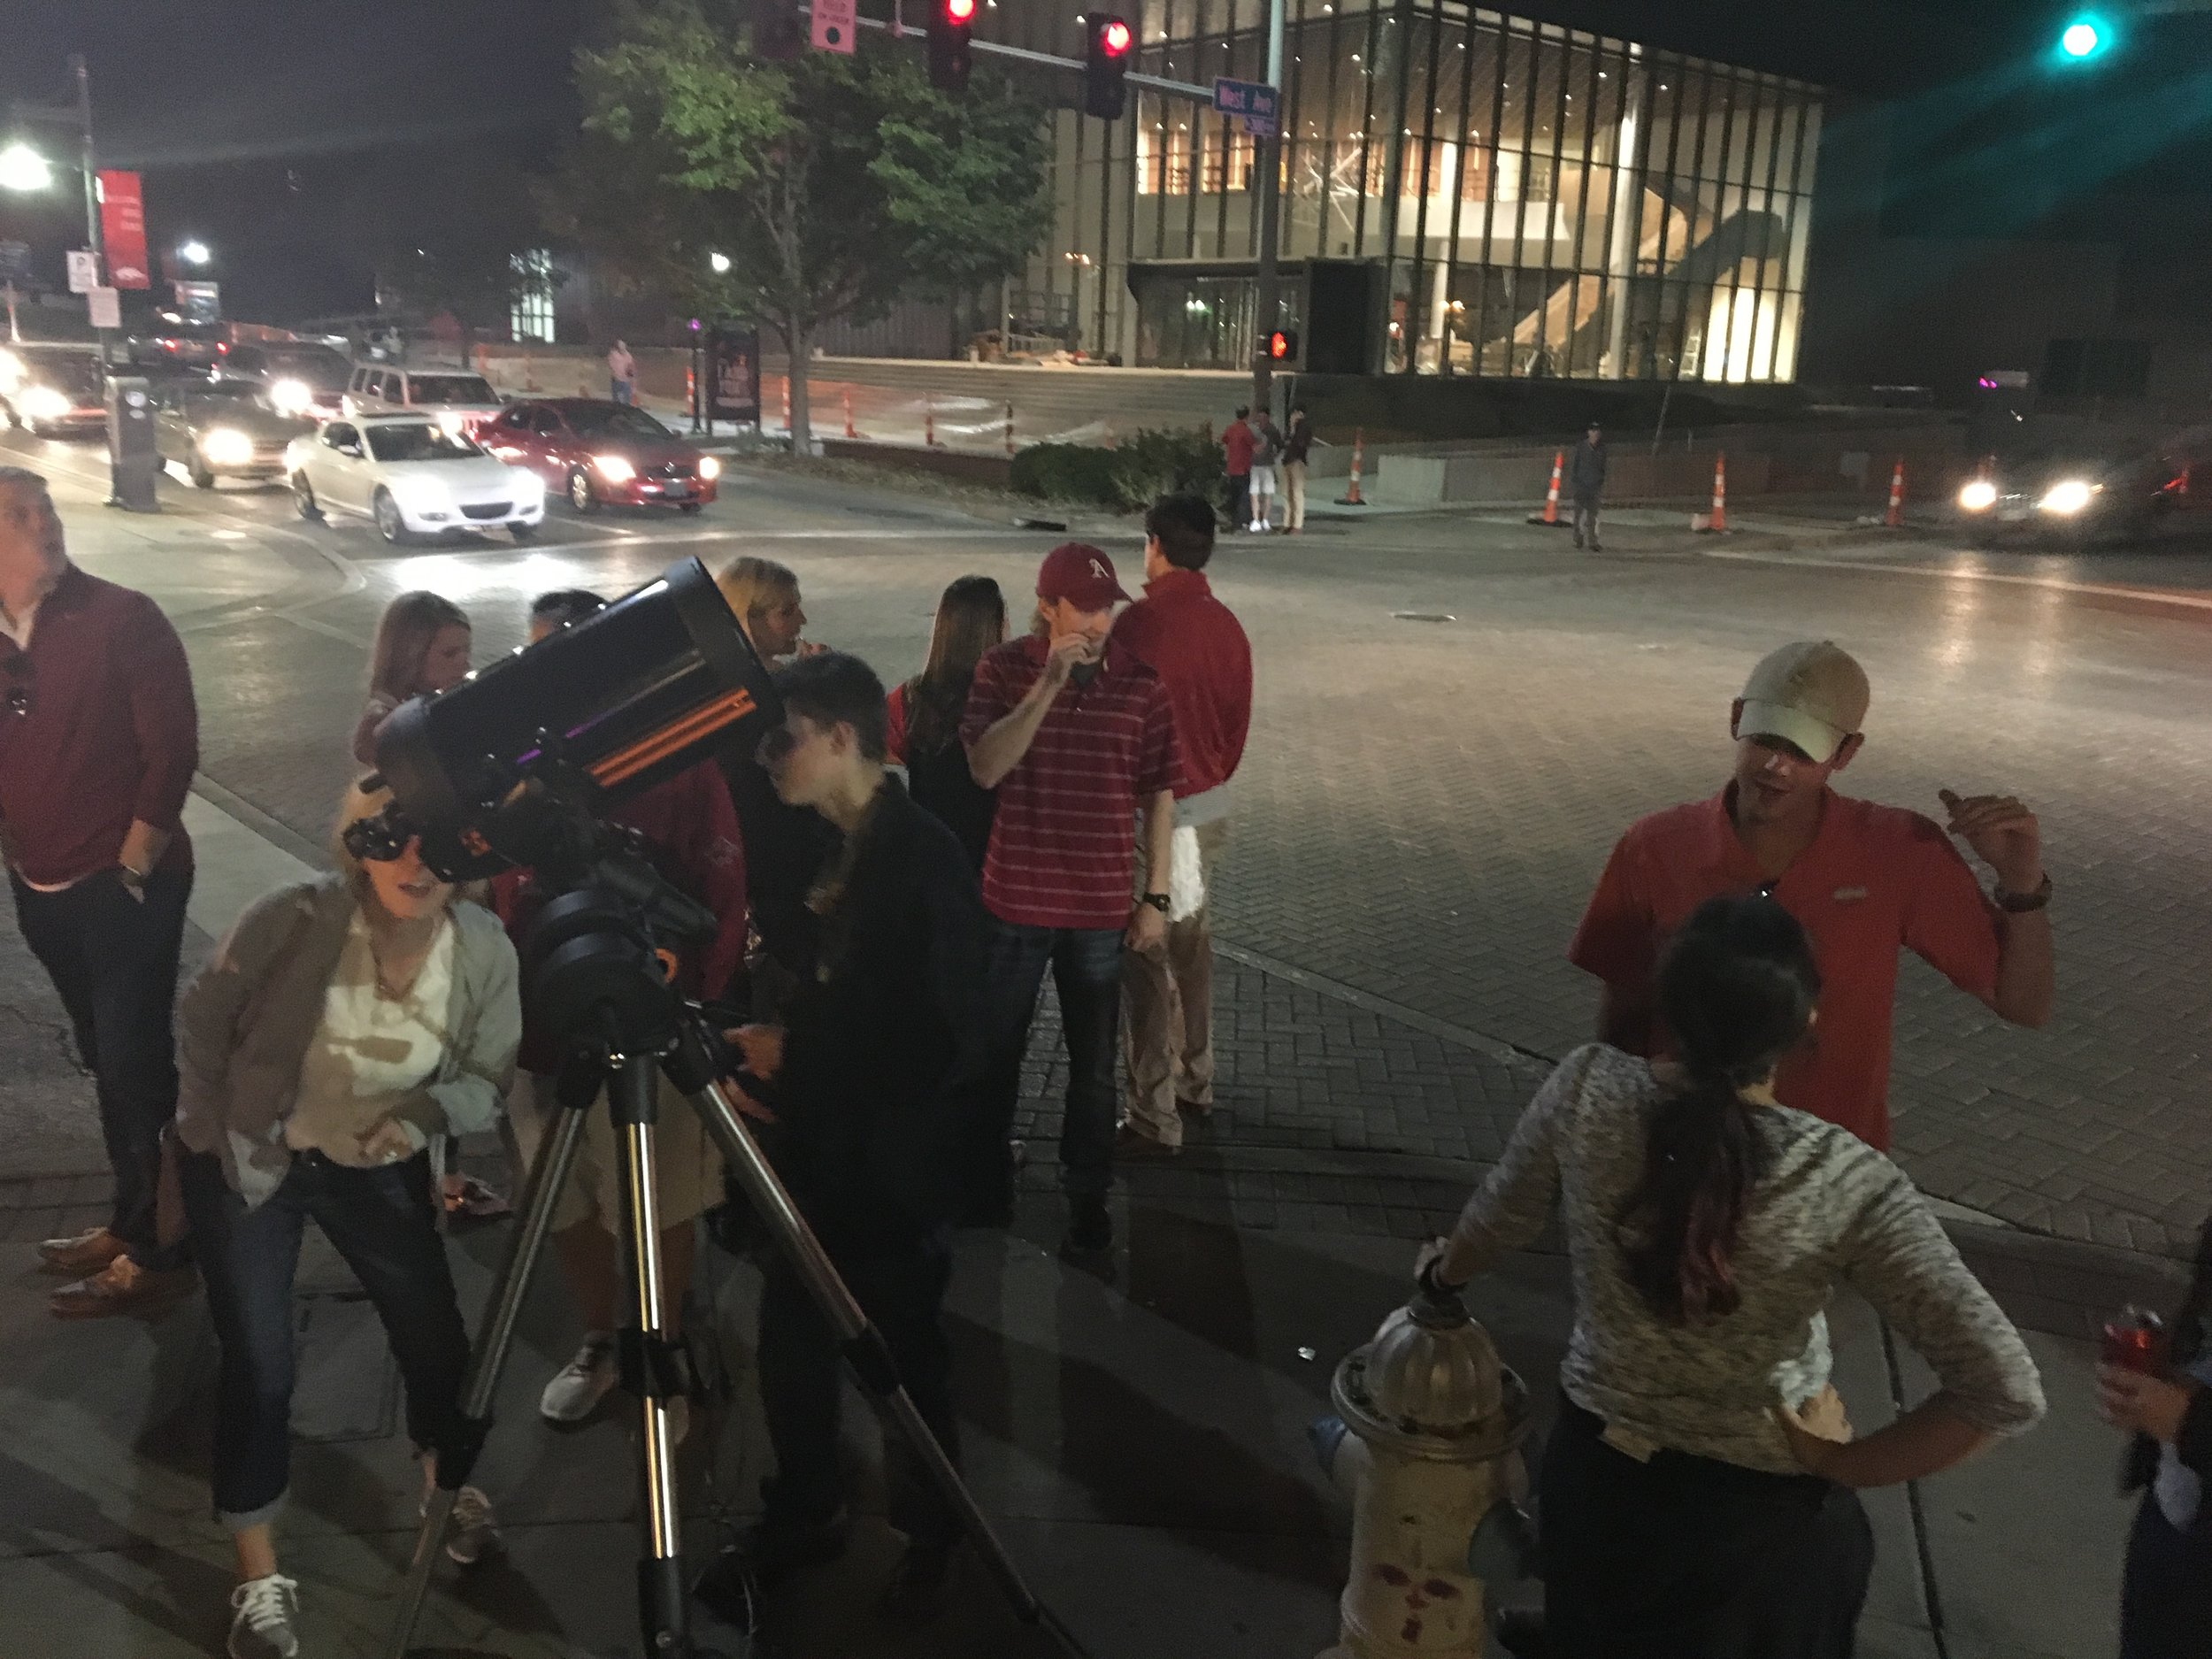 During the evening we had nearly 1,000 people stop and look through the telescopes.